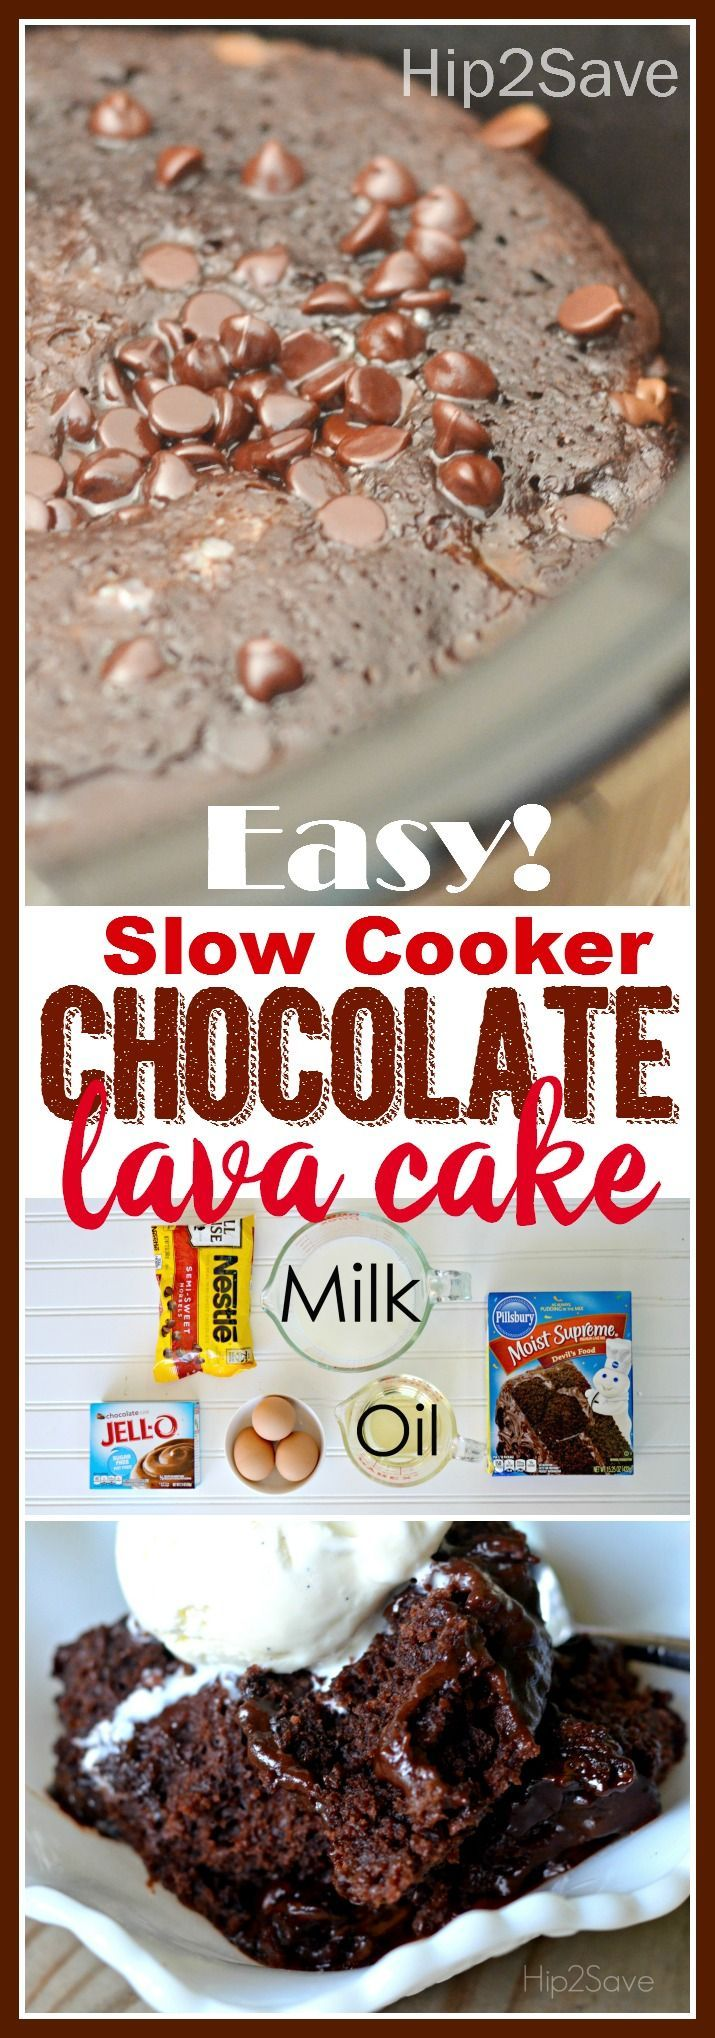 Best 25+ Slow cooker lava cake ideas on Pinterest | Slow cooker ...